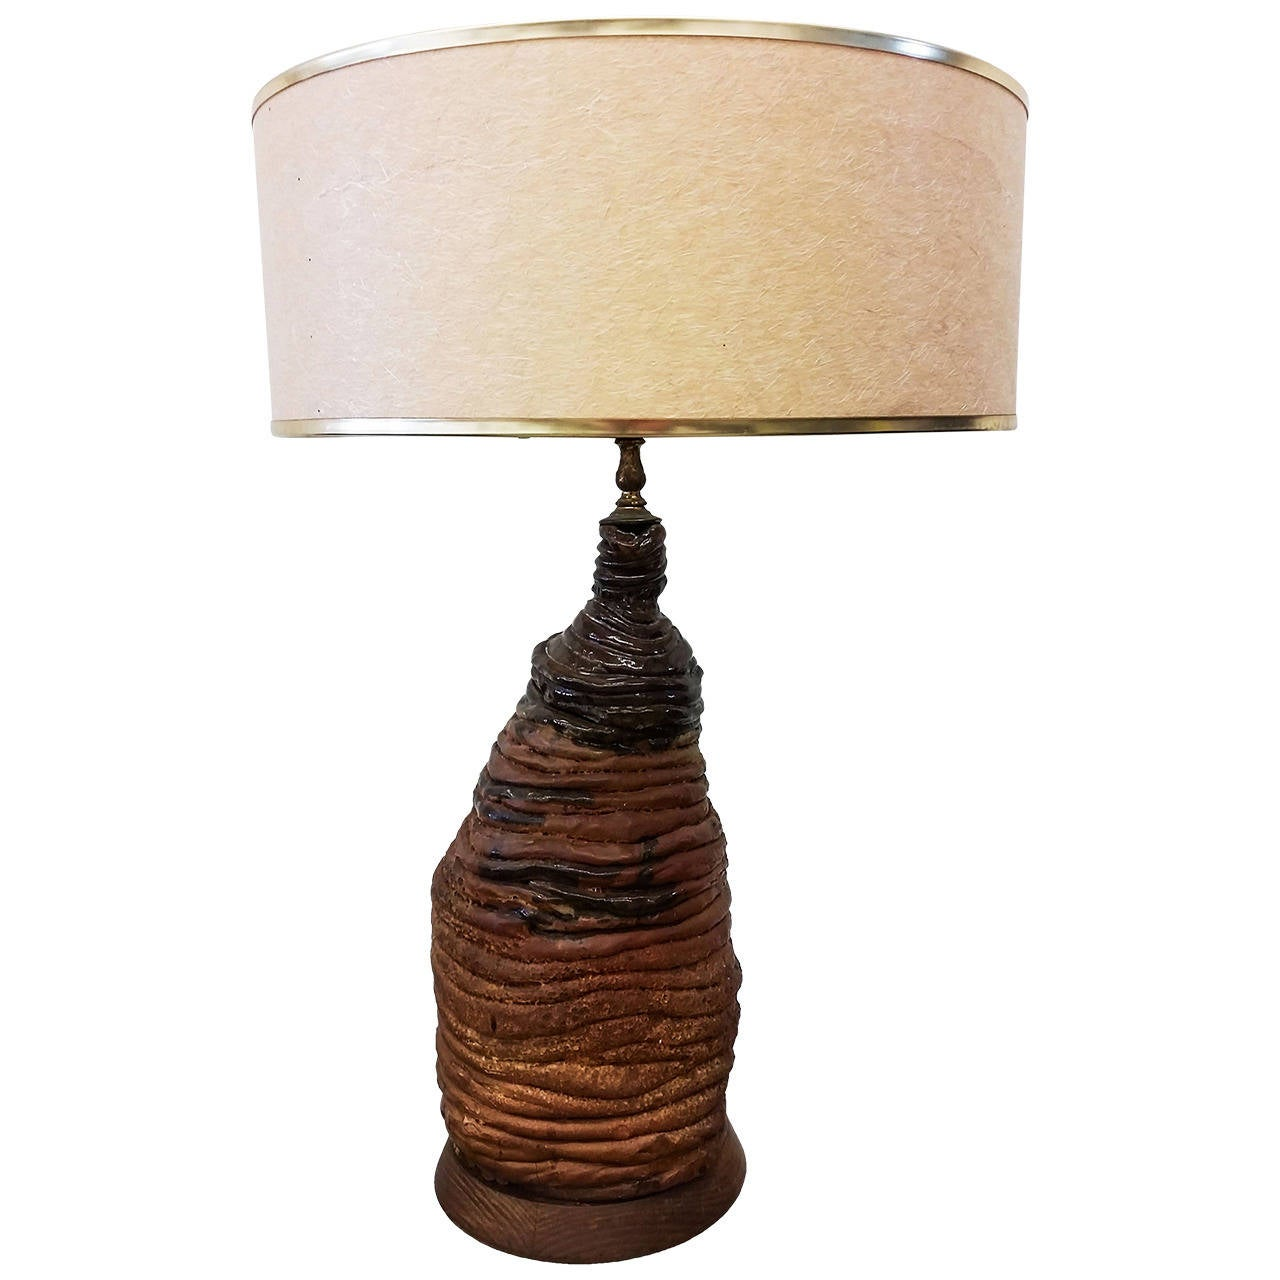 Charmant Mid Century Brutalist Clay Table Lamp For Sale